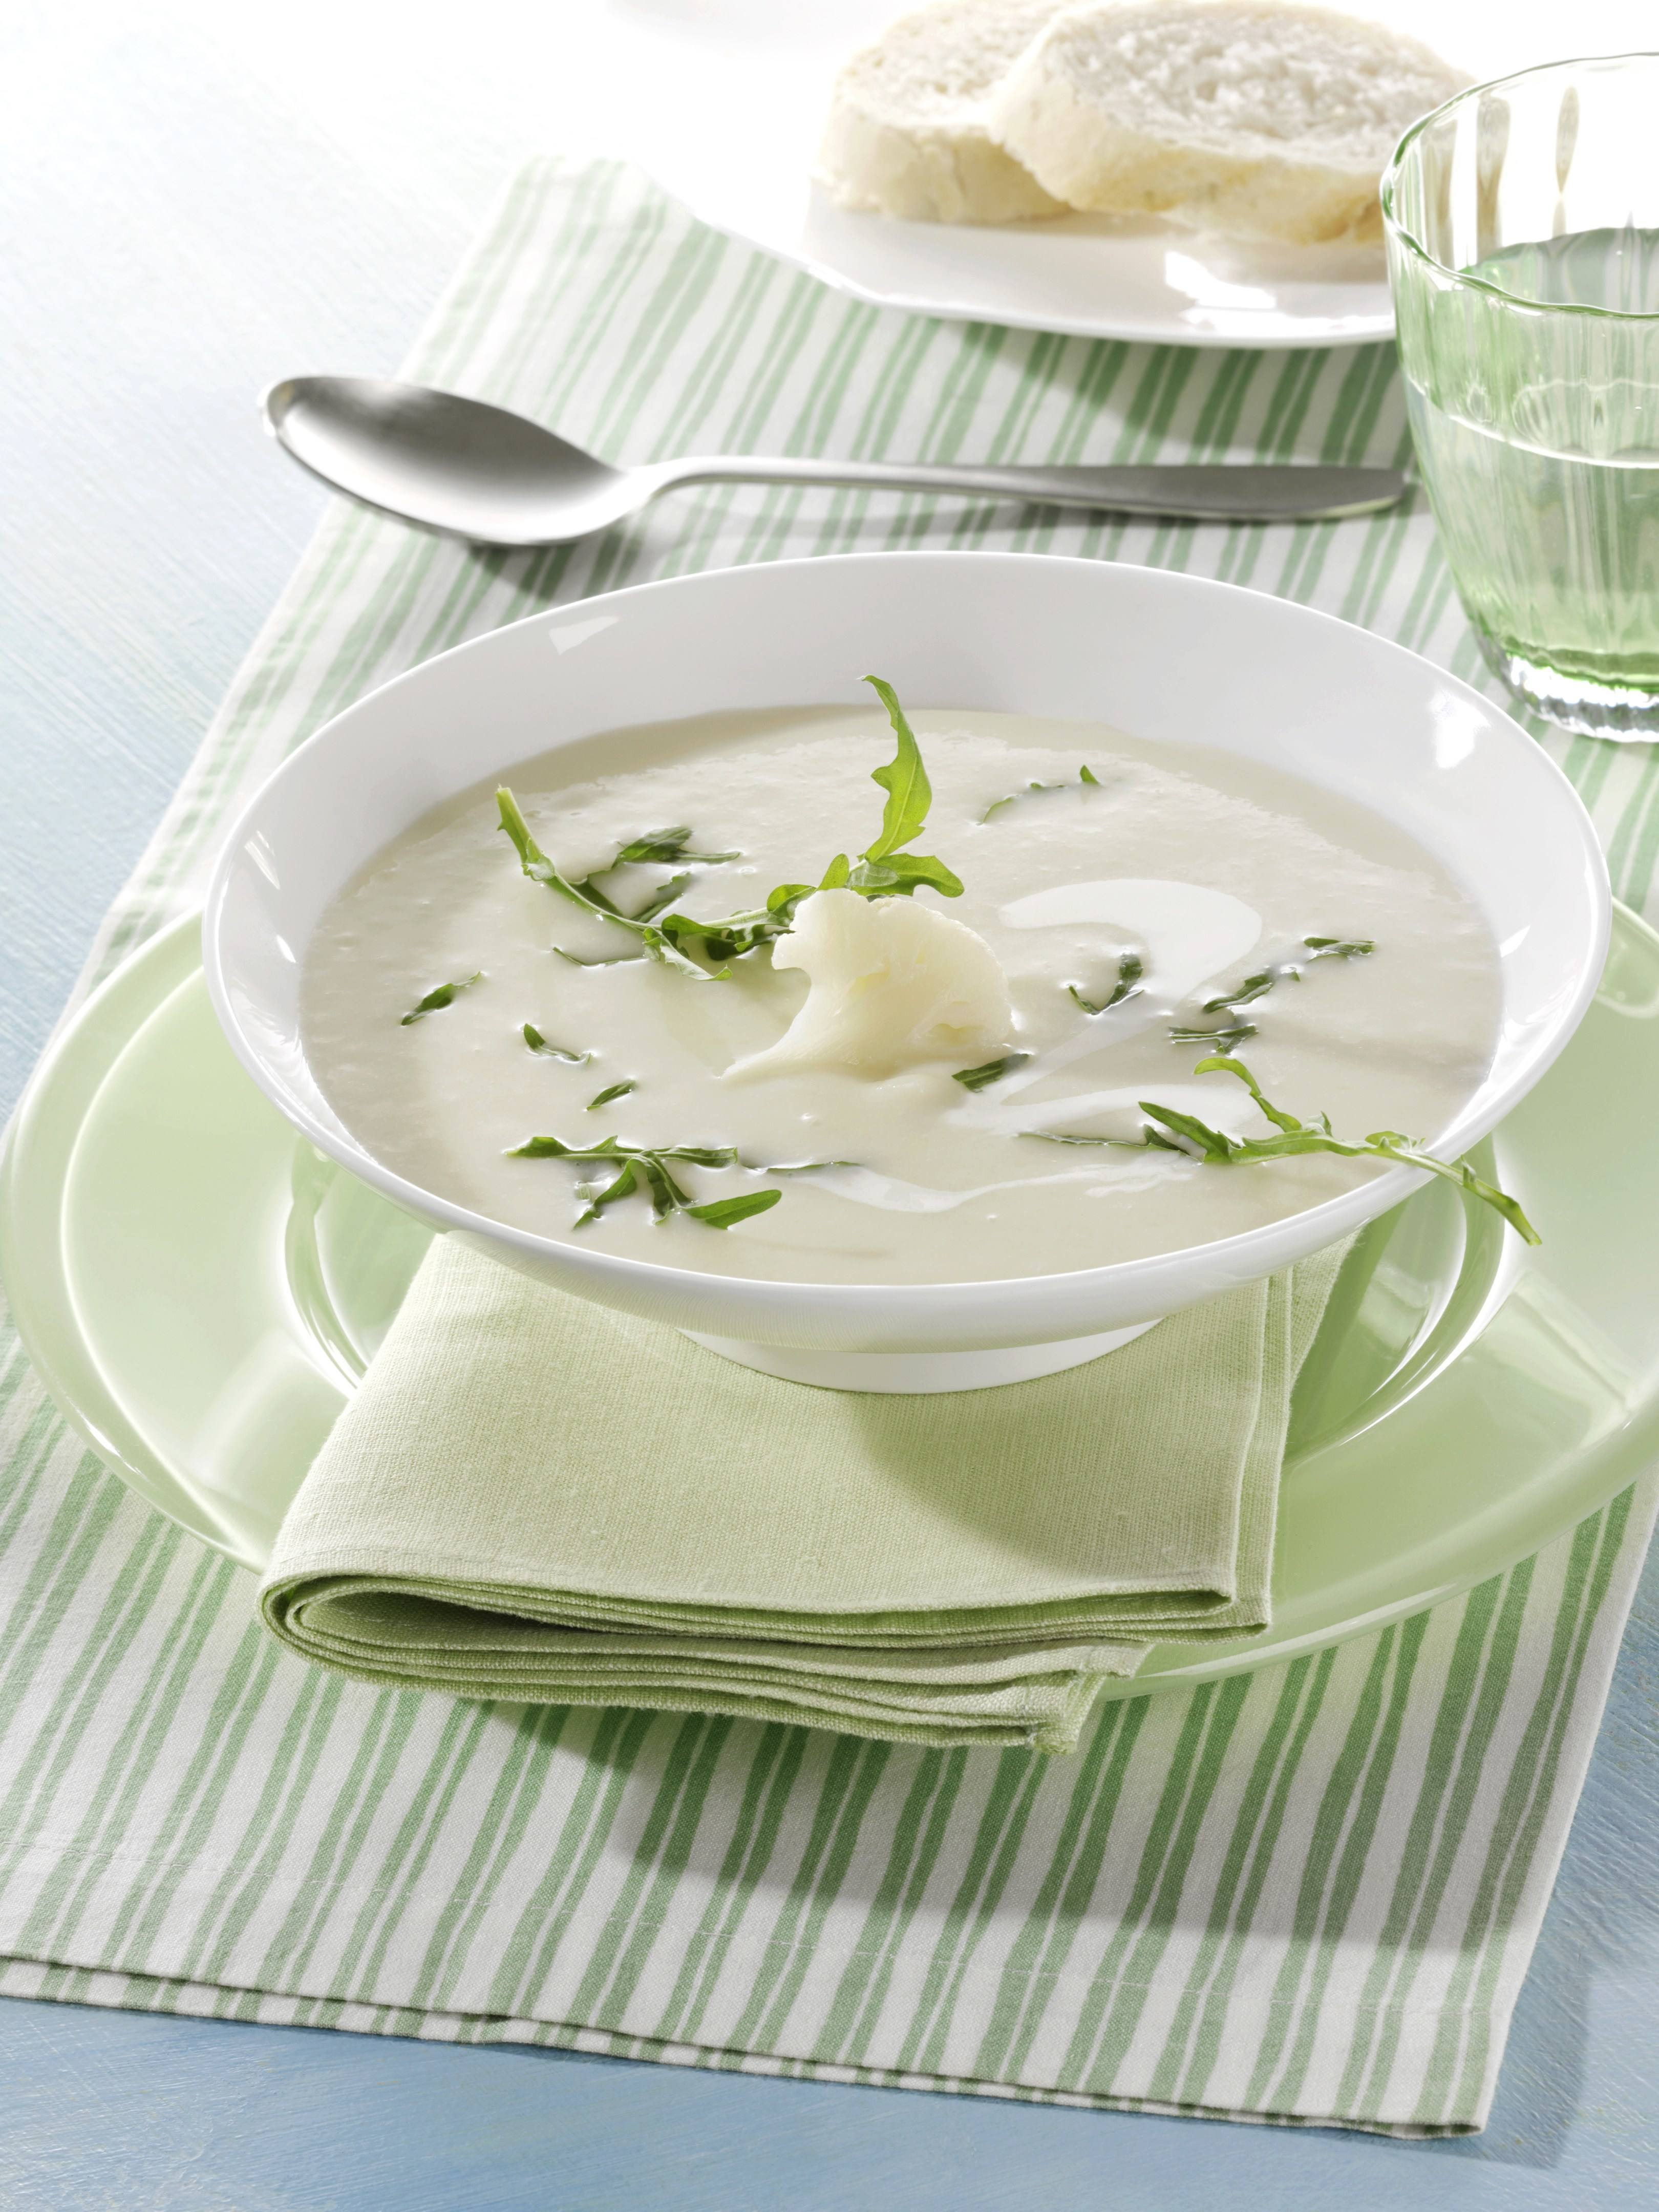 recipe image Karfiol-Rucola-Suppe